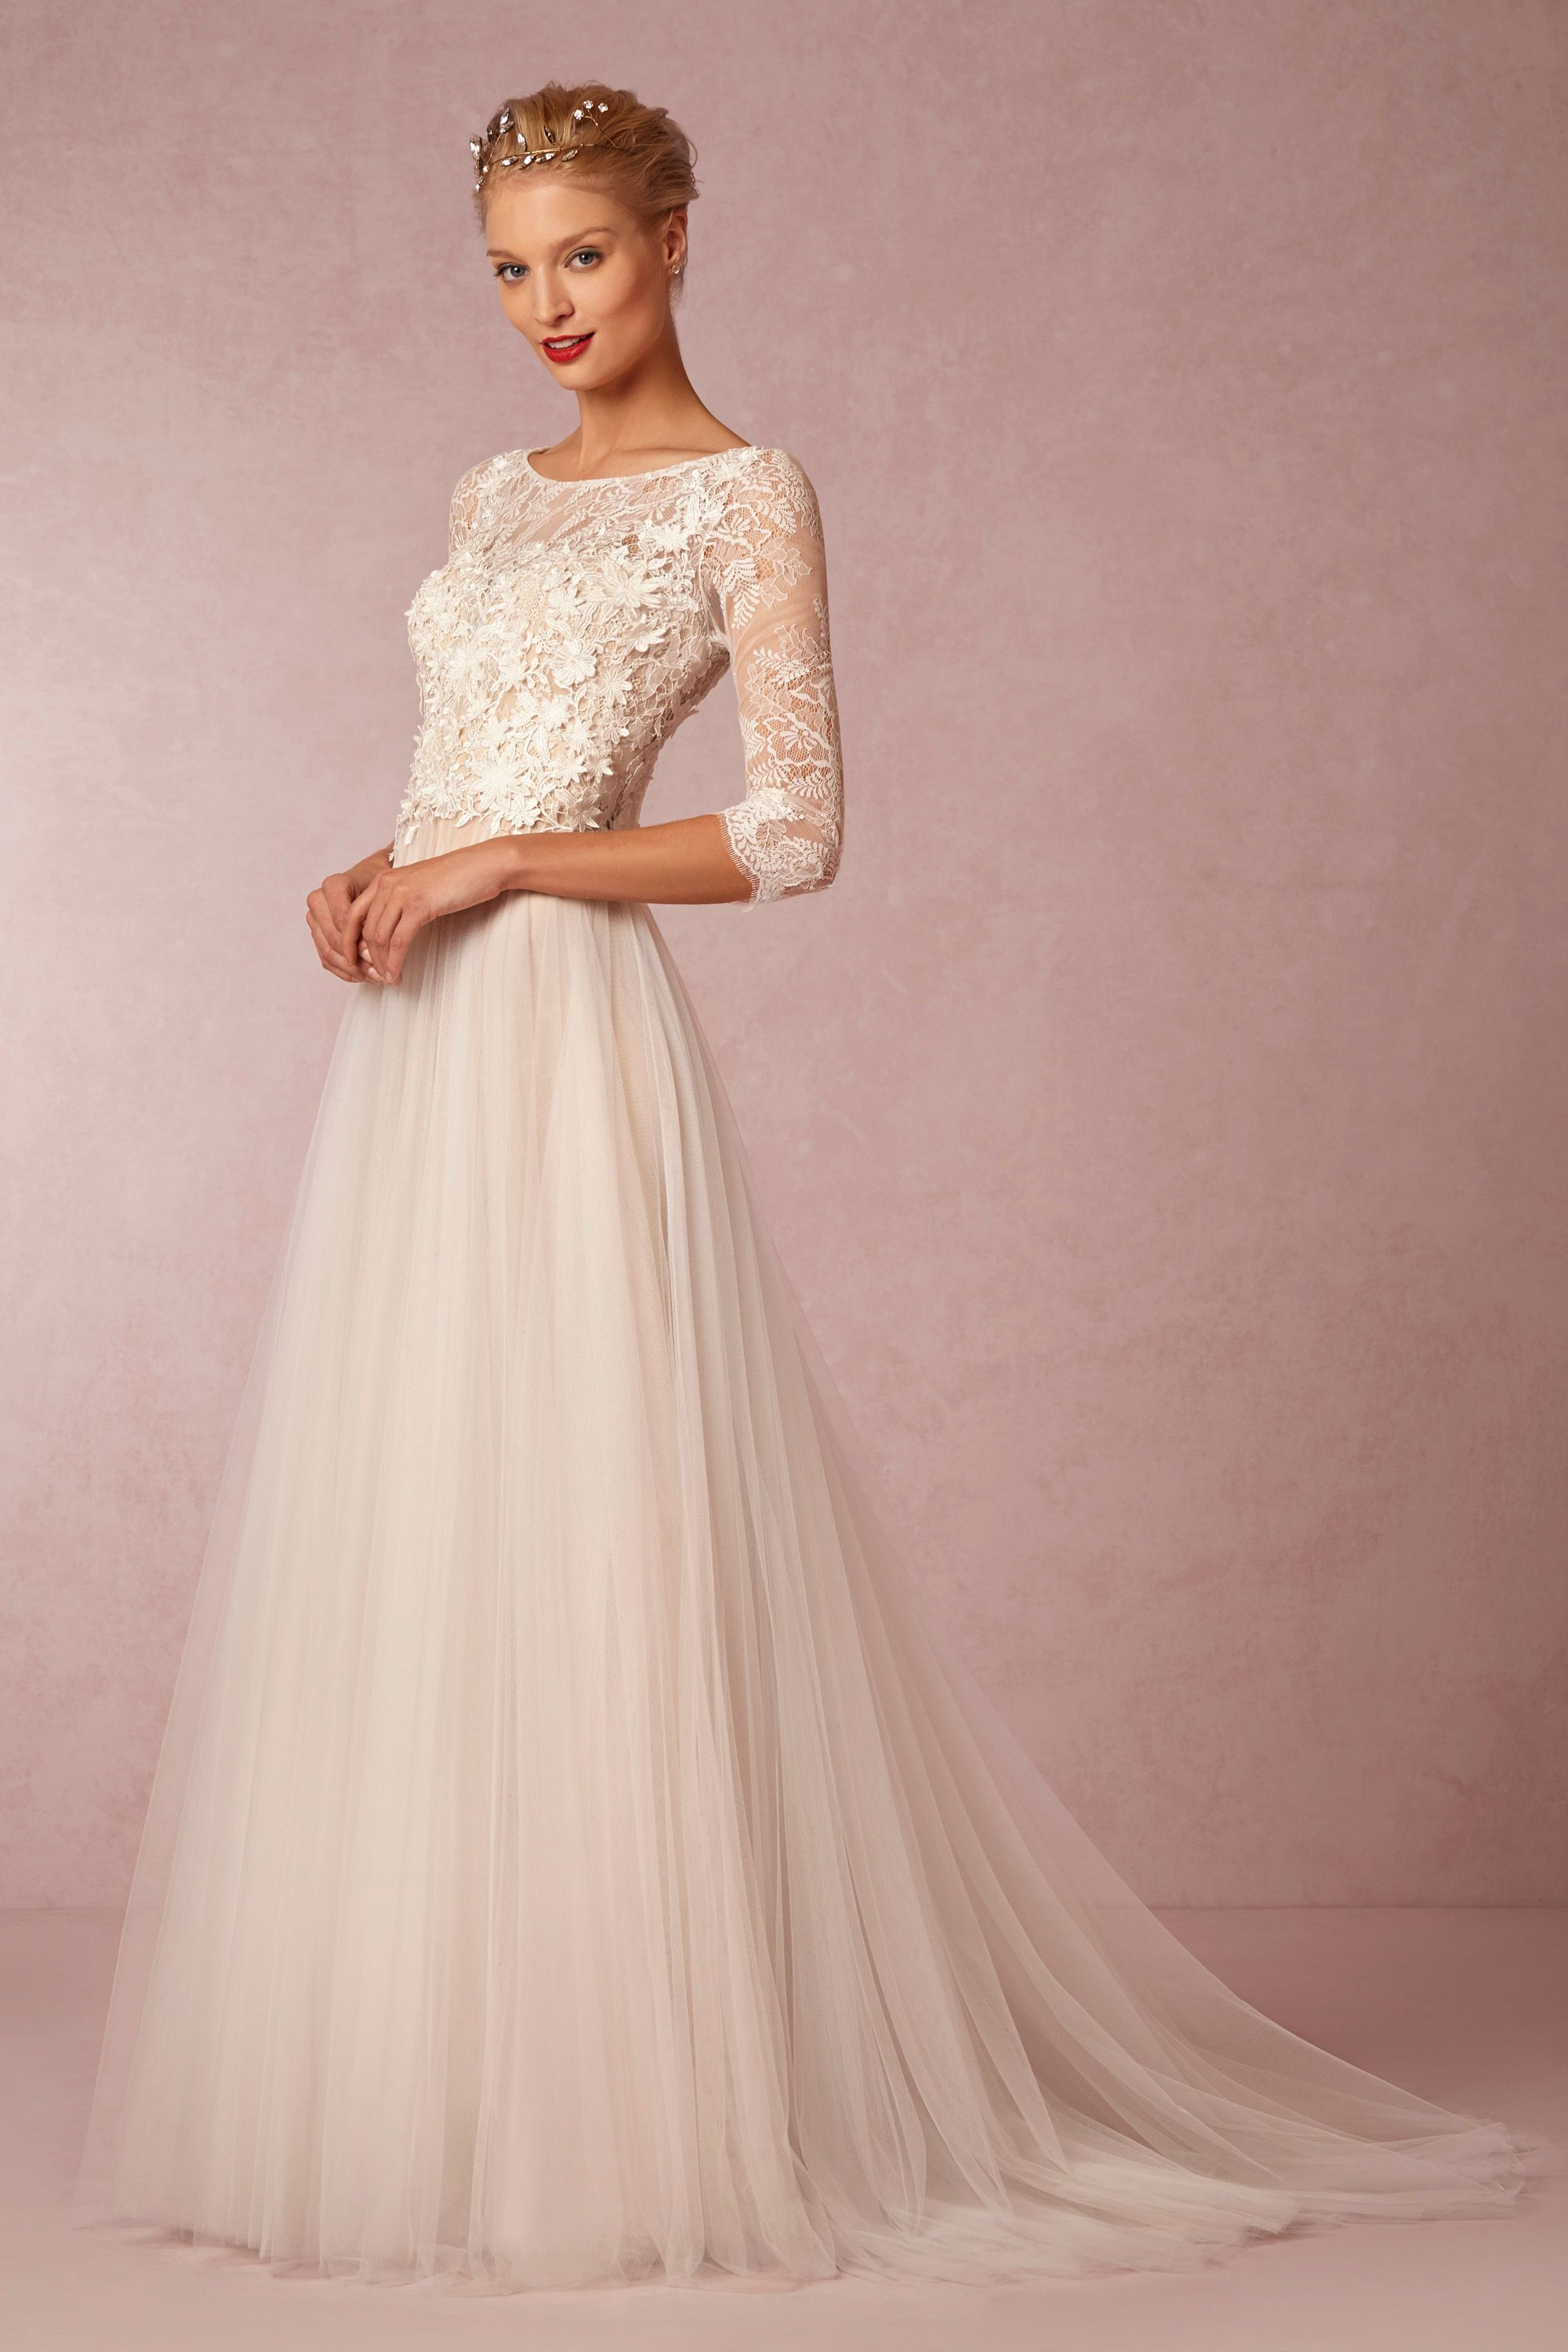 18 Wedding Gowns You\'ll Love | Novios, Vestidos de novia y De novia